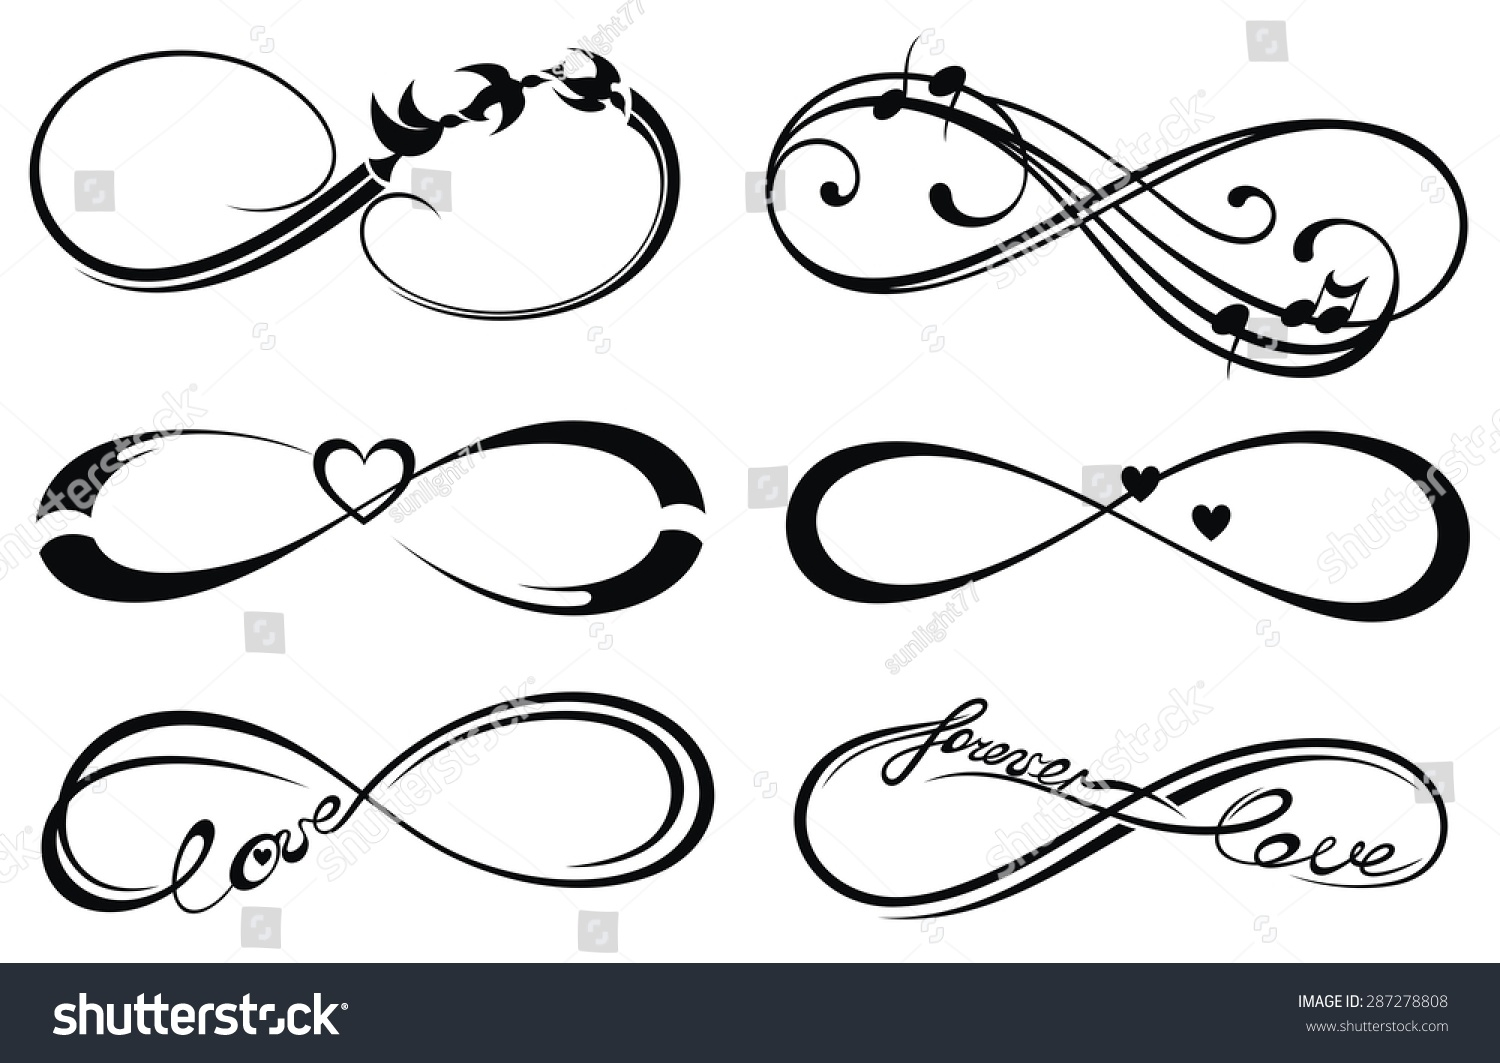 Infinity Love Forever Symbol Stock Vector Royalty Free 287278808